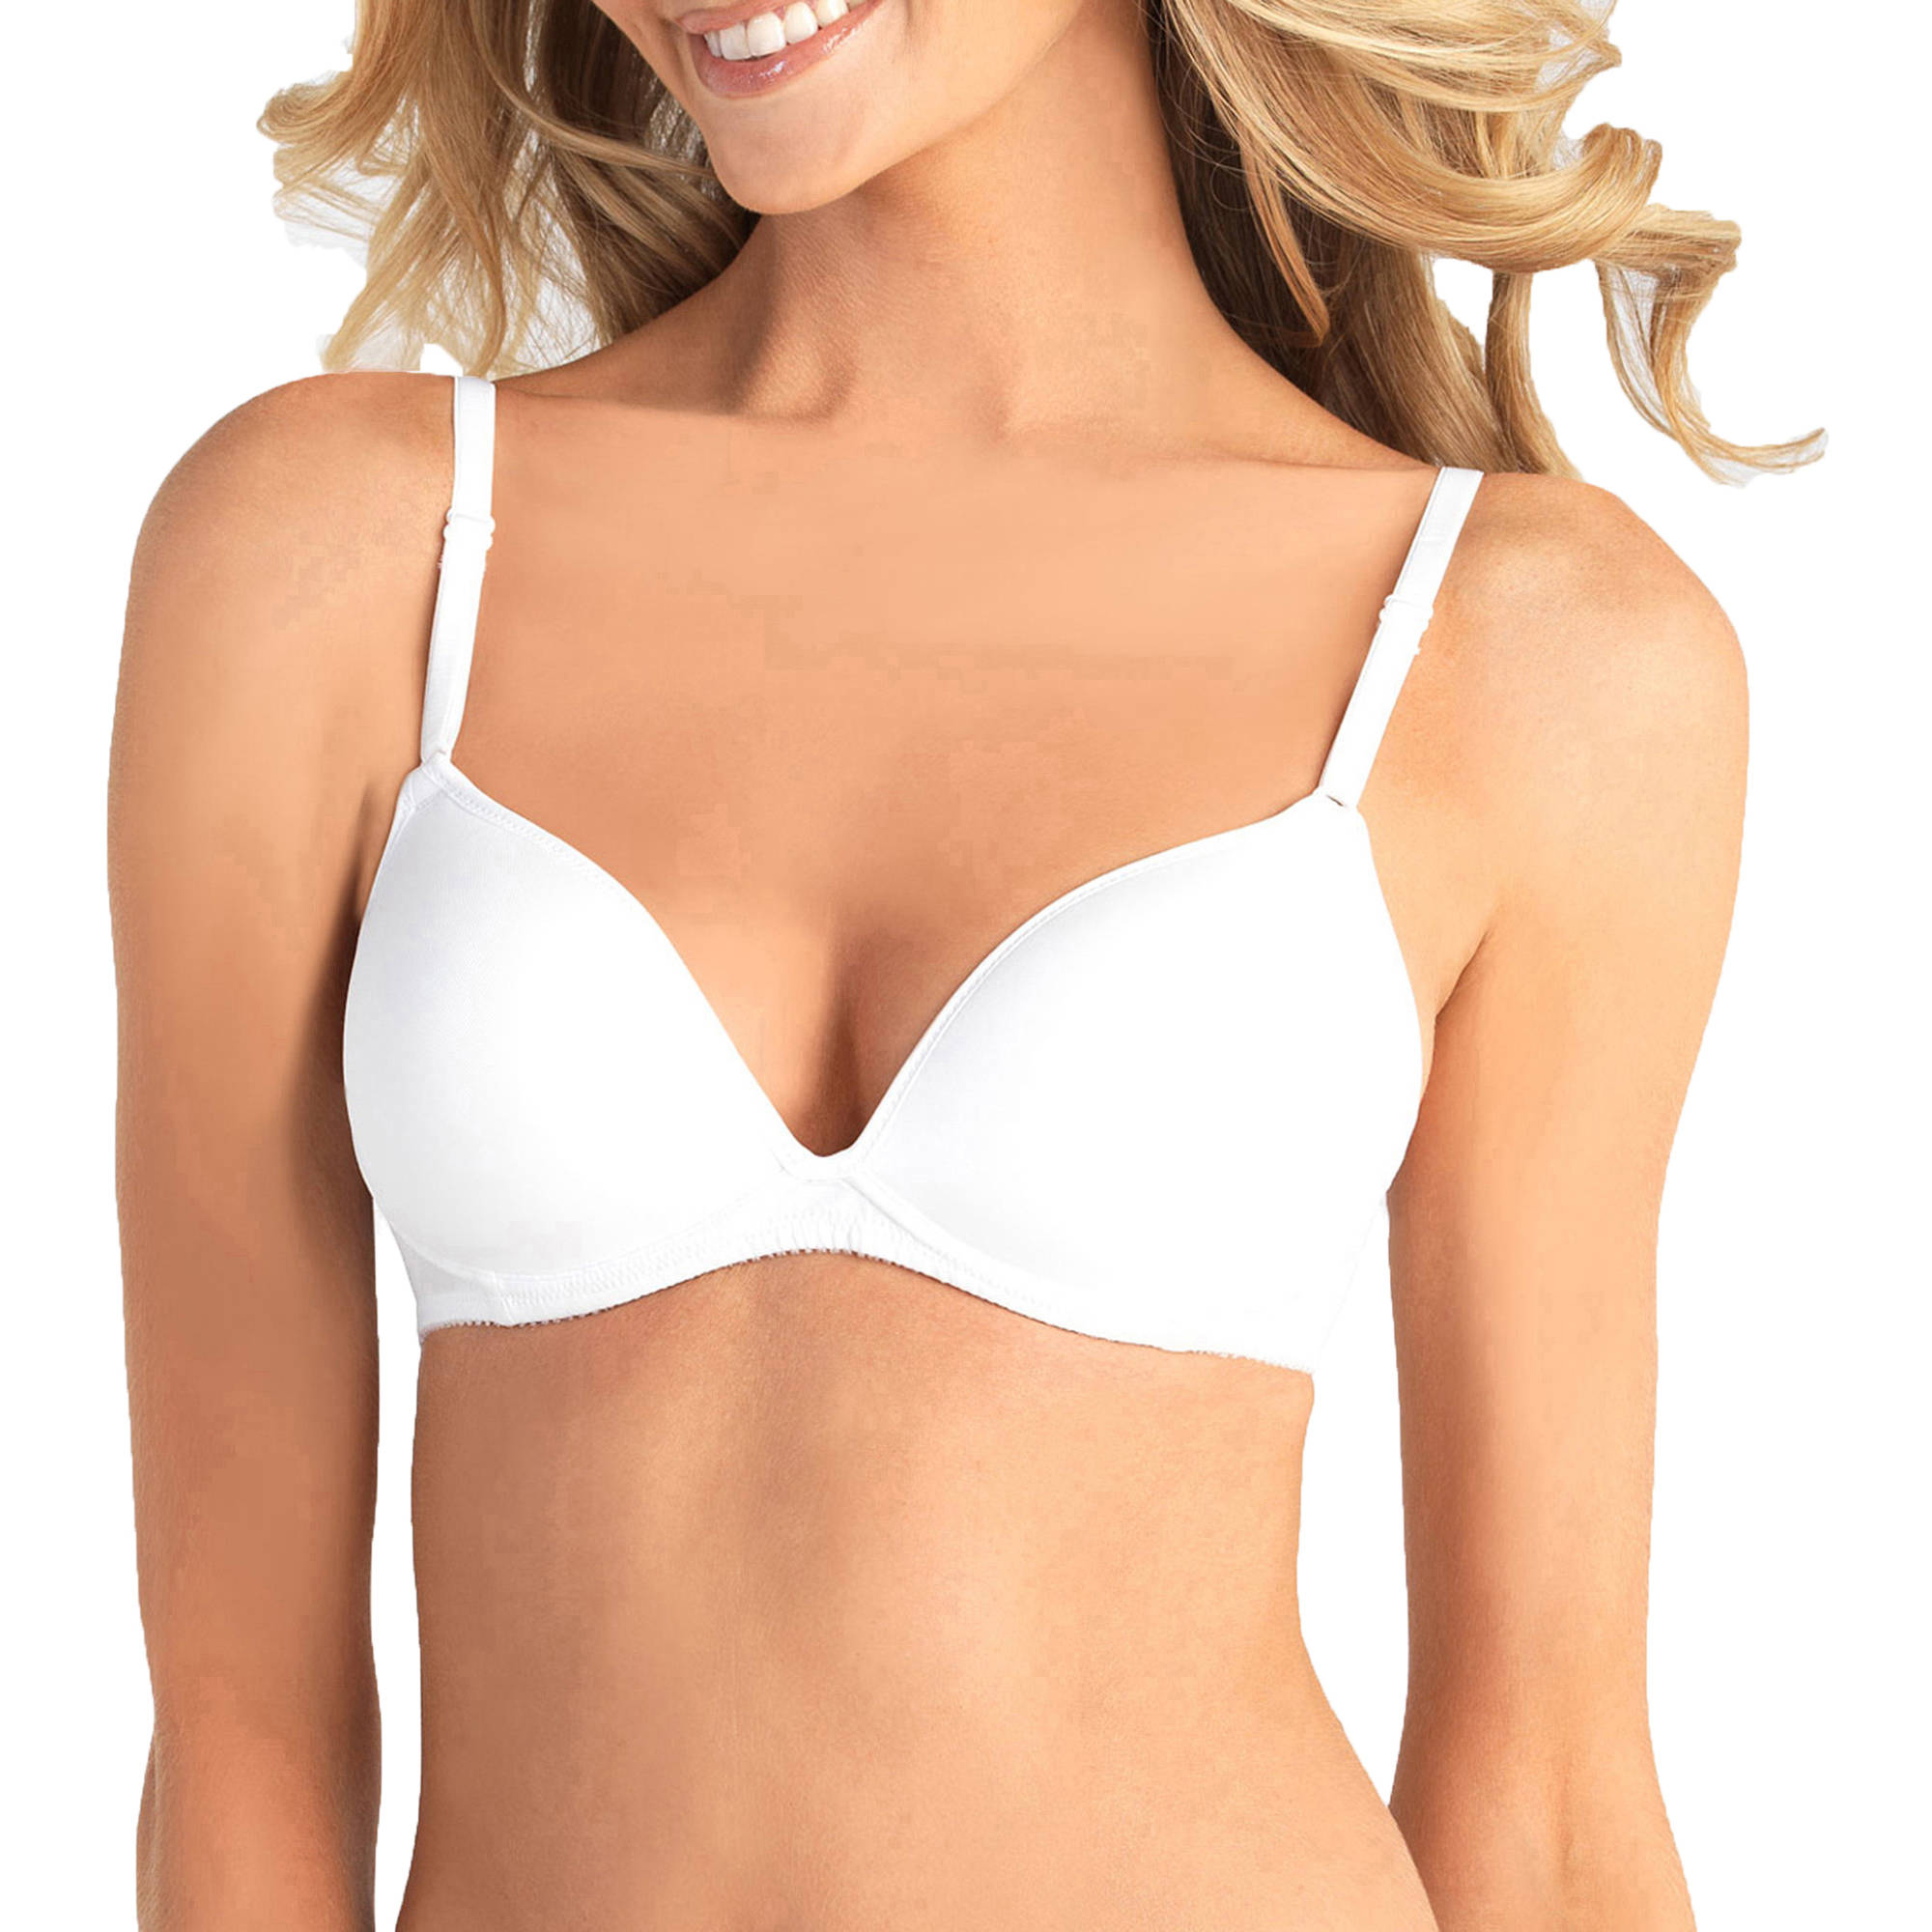 Vassarette - Women's Soft 'N Smooth Microfiber Wire-Free Level 1 Lightly Lined Bra